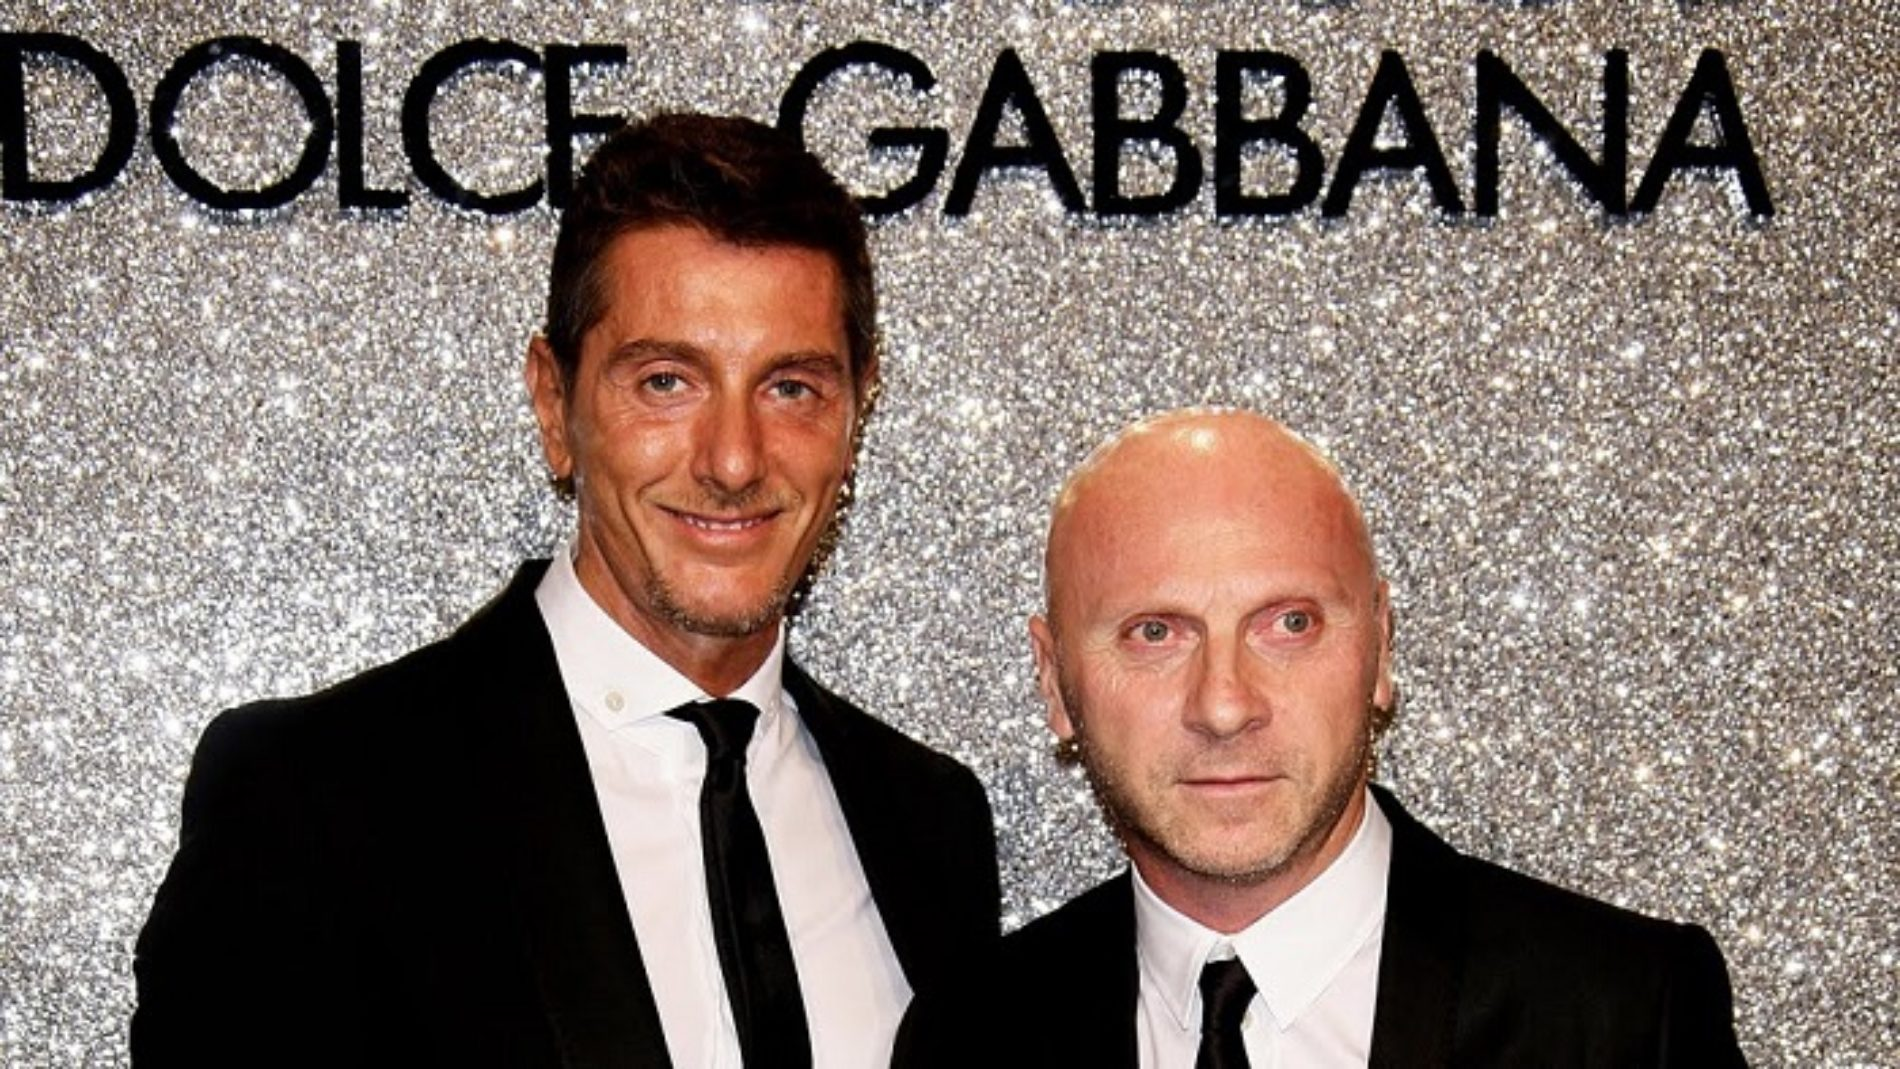 Gay fashion designers Dolce and Gabbana slam 'non-traditional' families